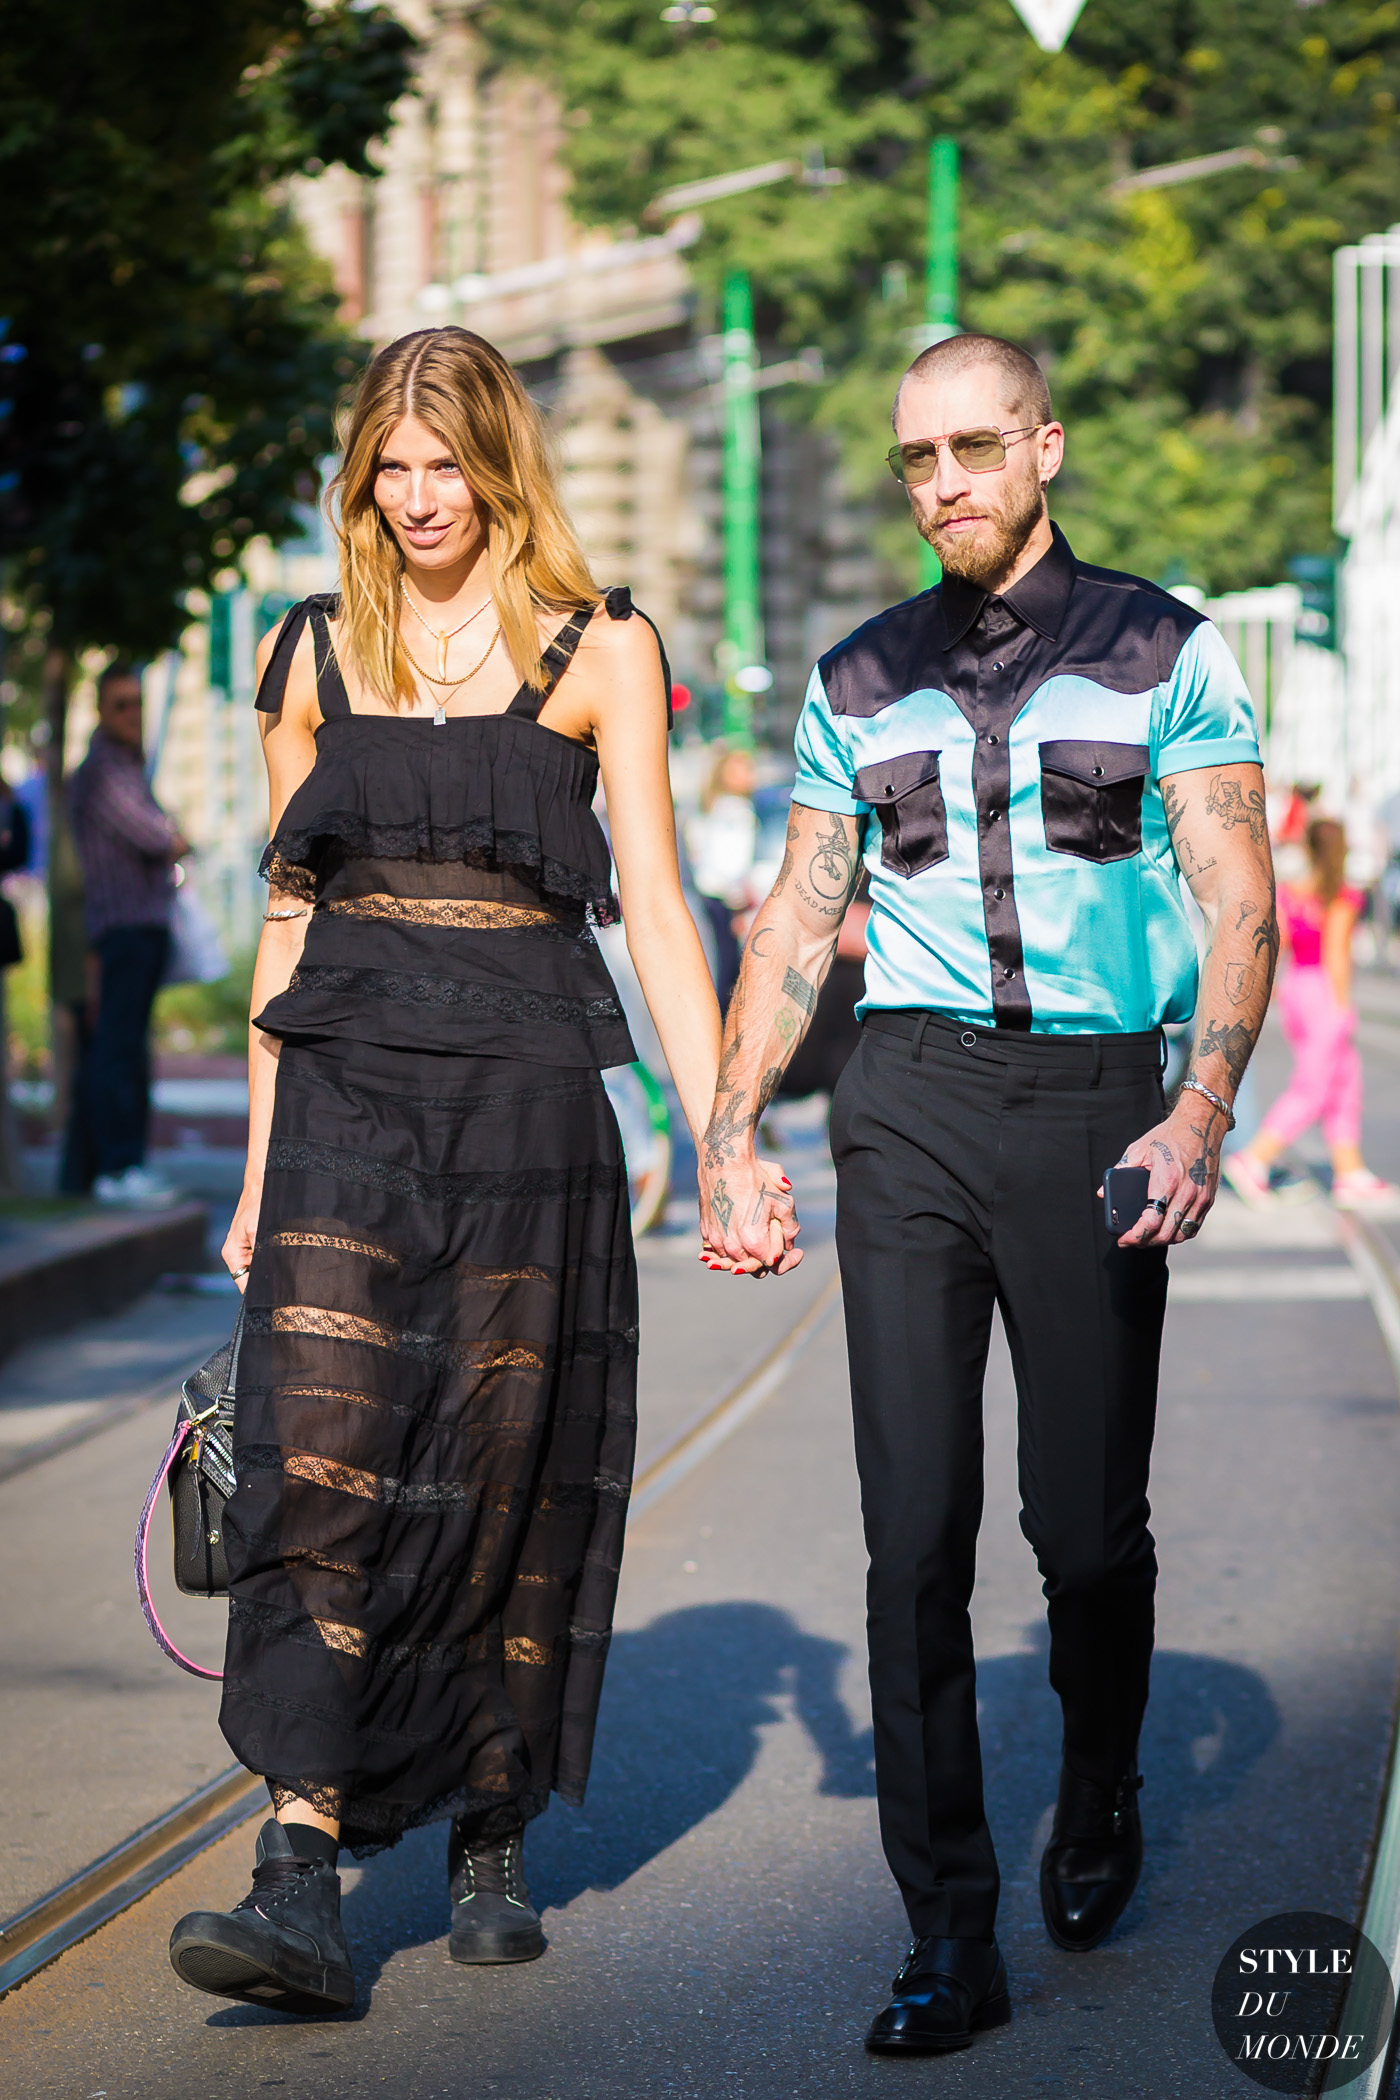 Veronika Heilbrunner and Justin OShea Street Style Street Fashion Streetsnaps by STYLEDUMONDE Street Style Fashion Photography